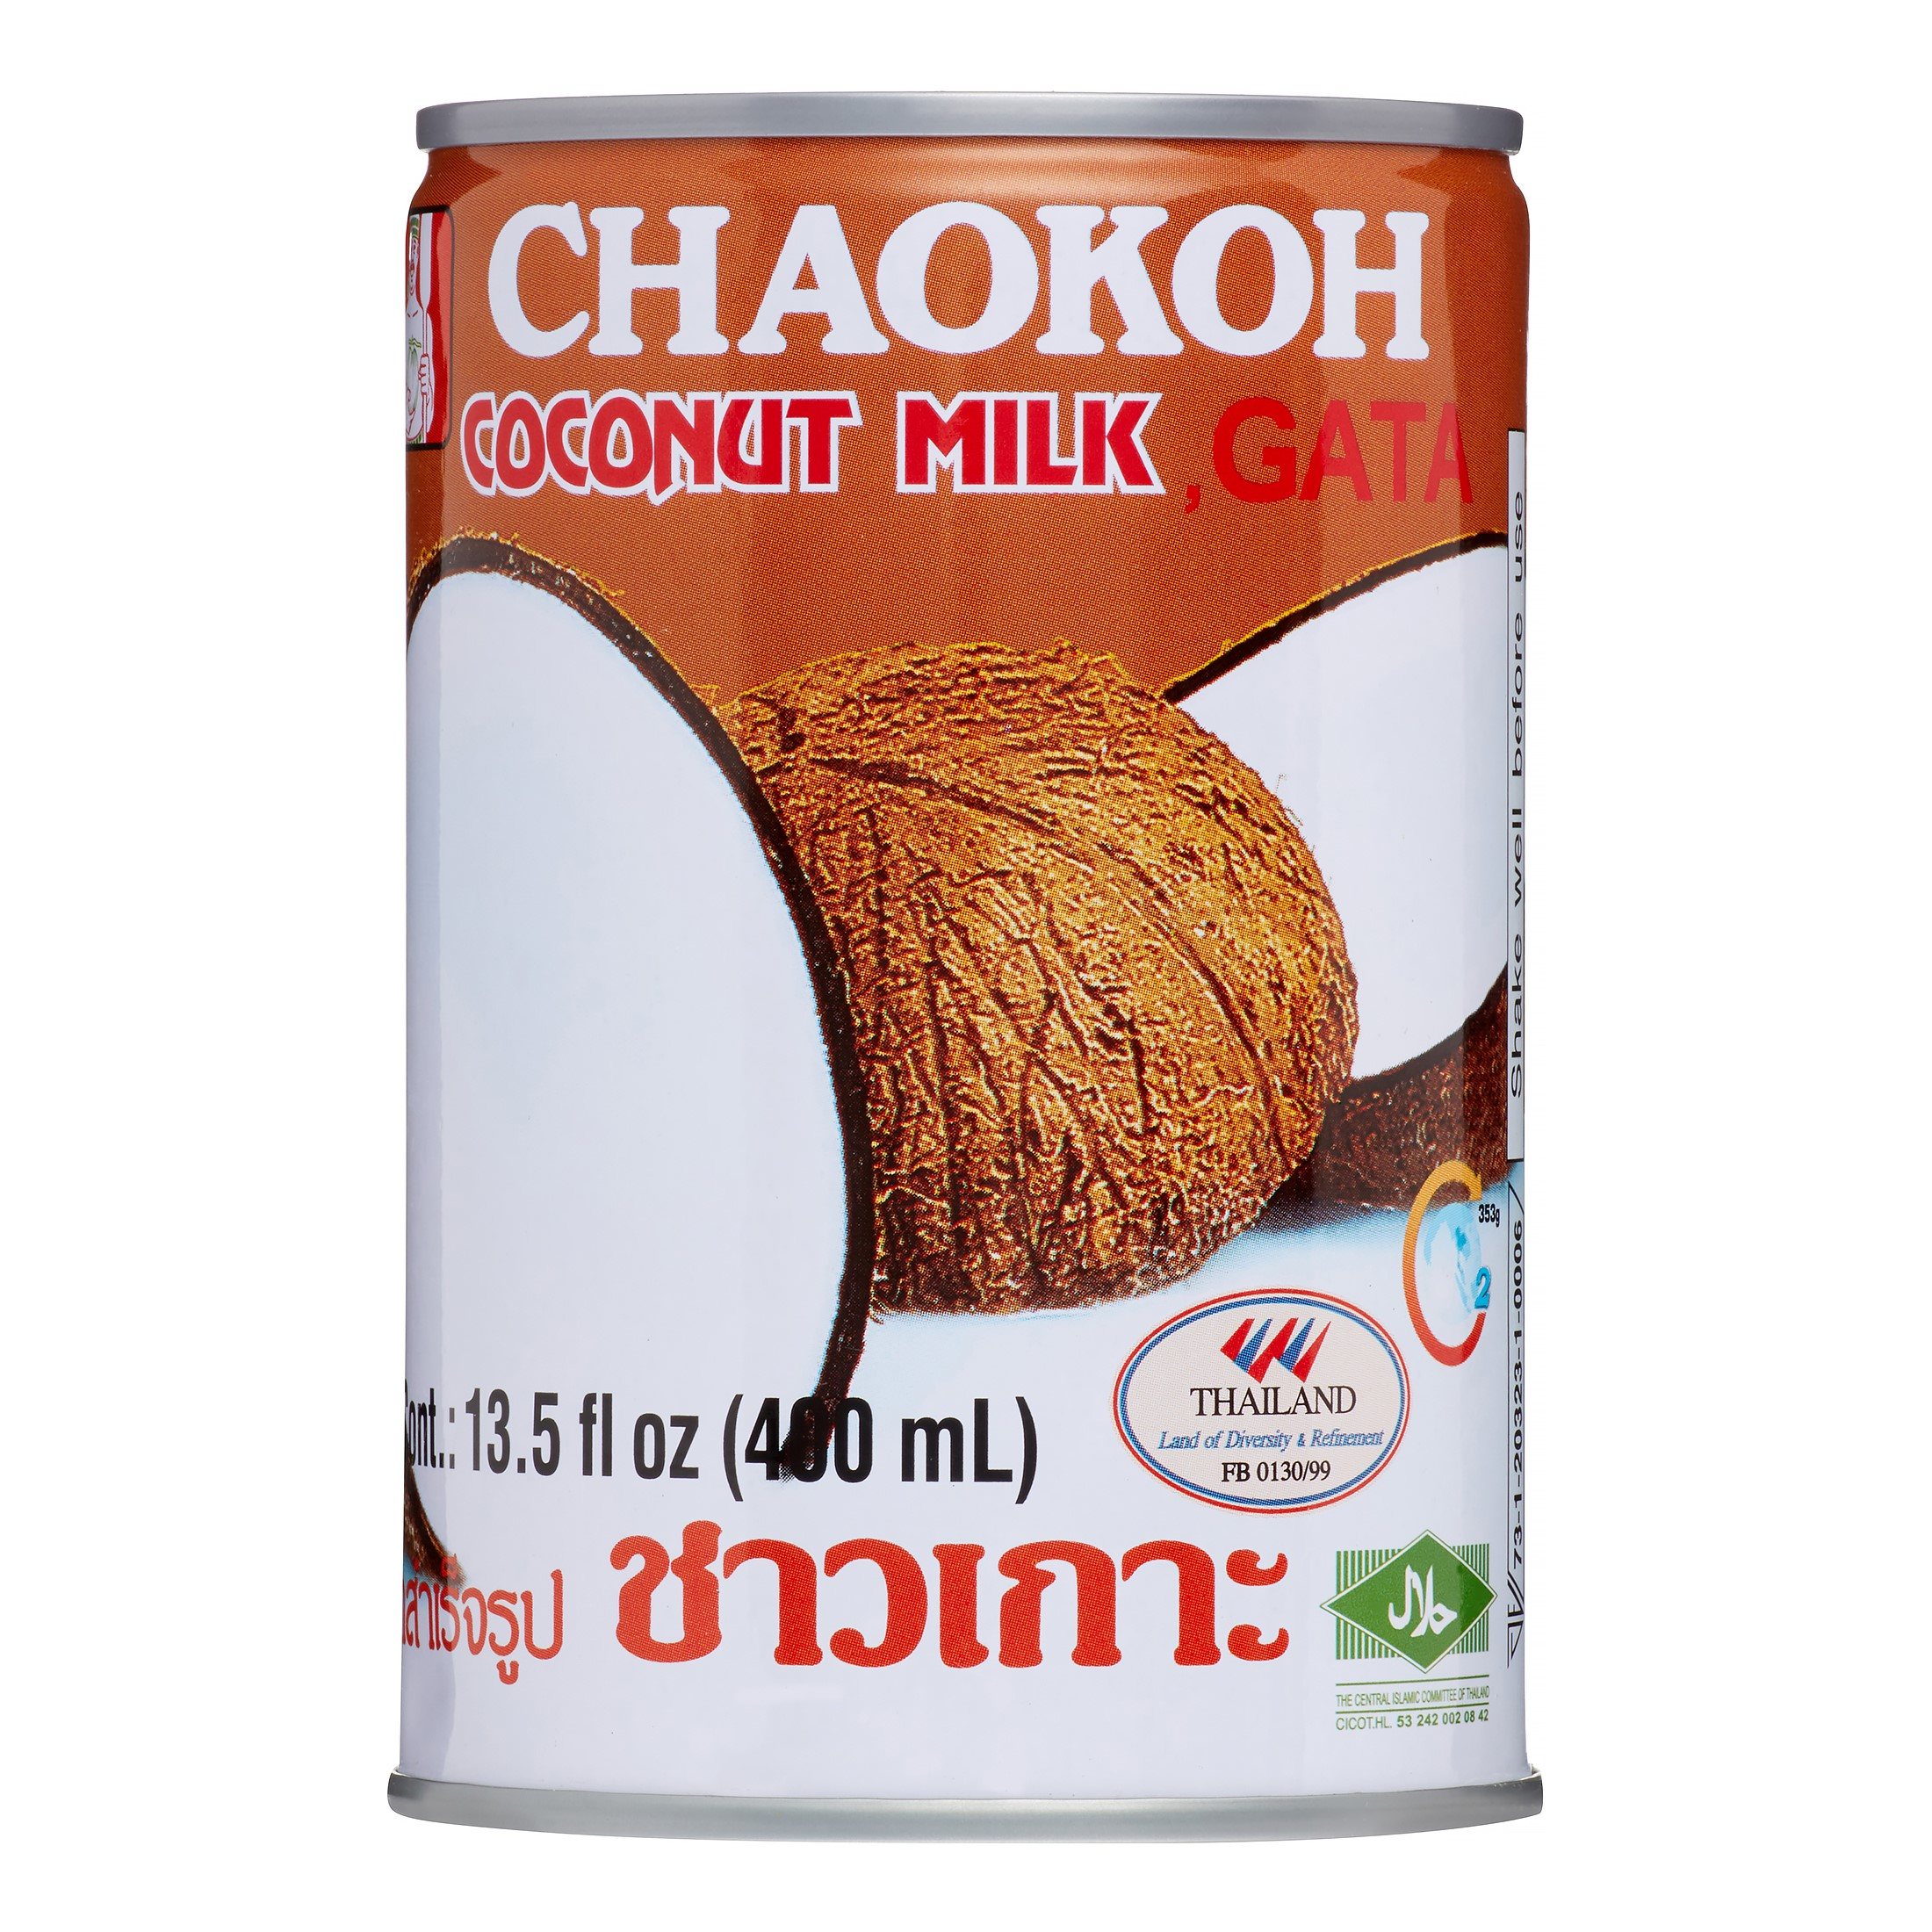 Chao Koh Coconut Milk, 13.5 Oz by Chao Koh